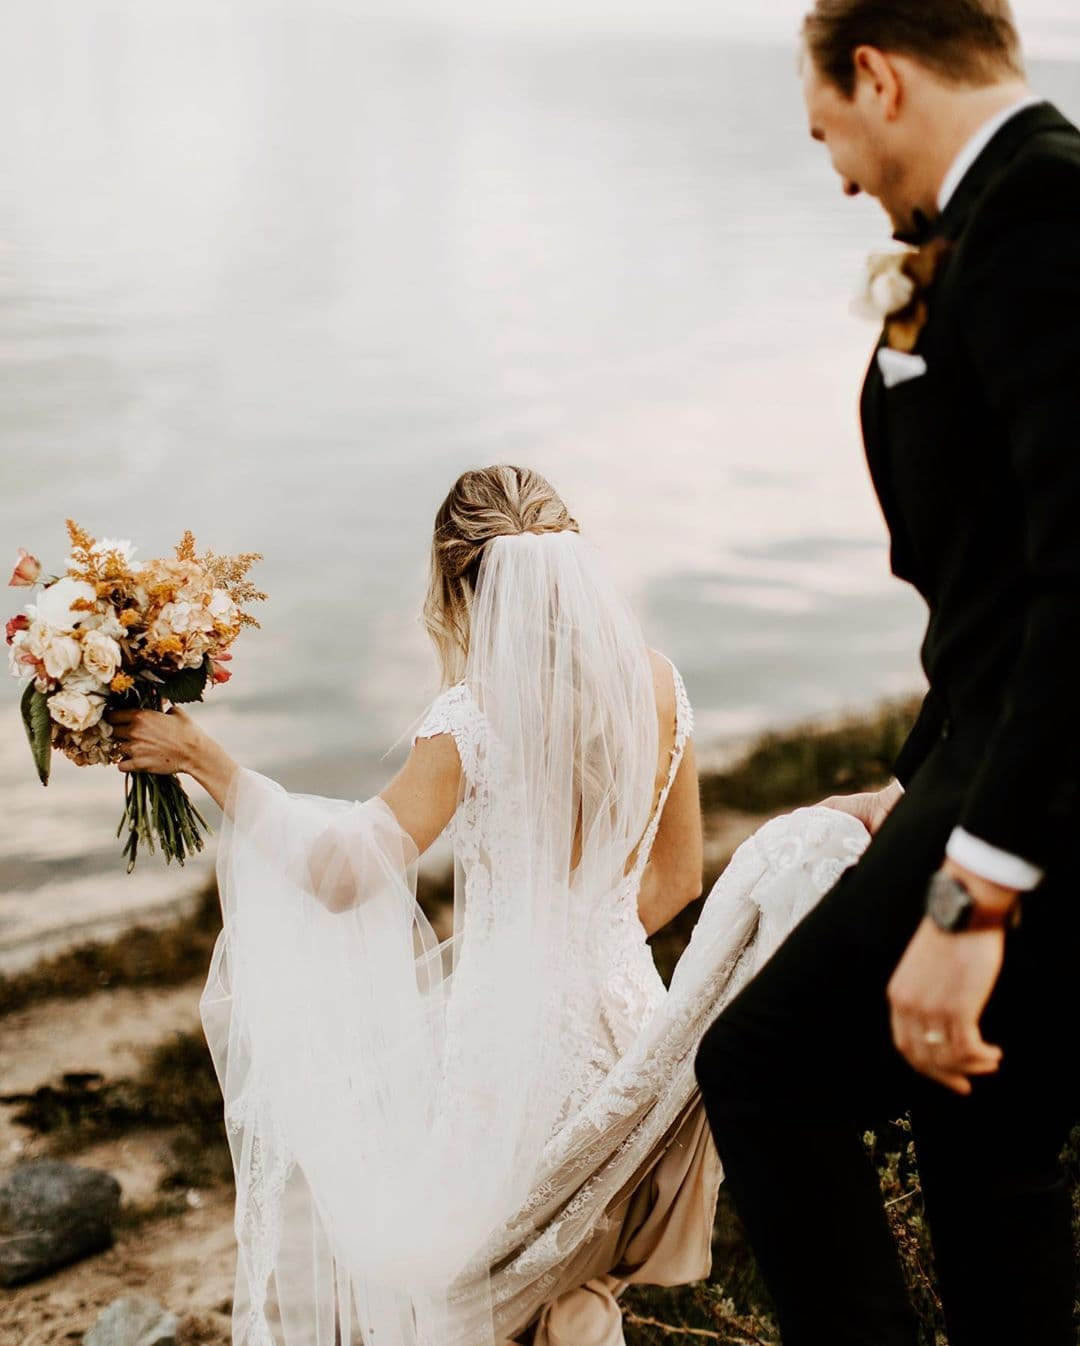 Vintage Inspired Wedding Dresses Lace Sequin Backless Bohemian Bridal Gowns Amazonas Photography BHLDN